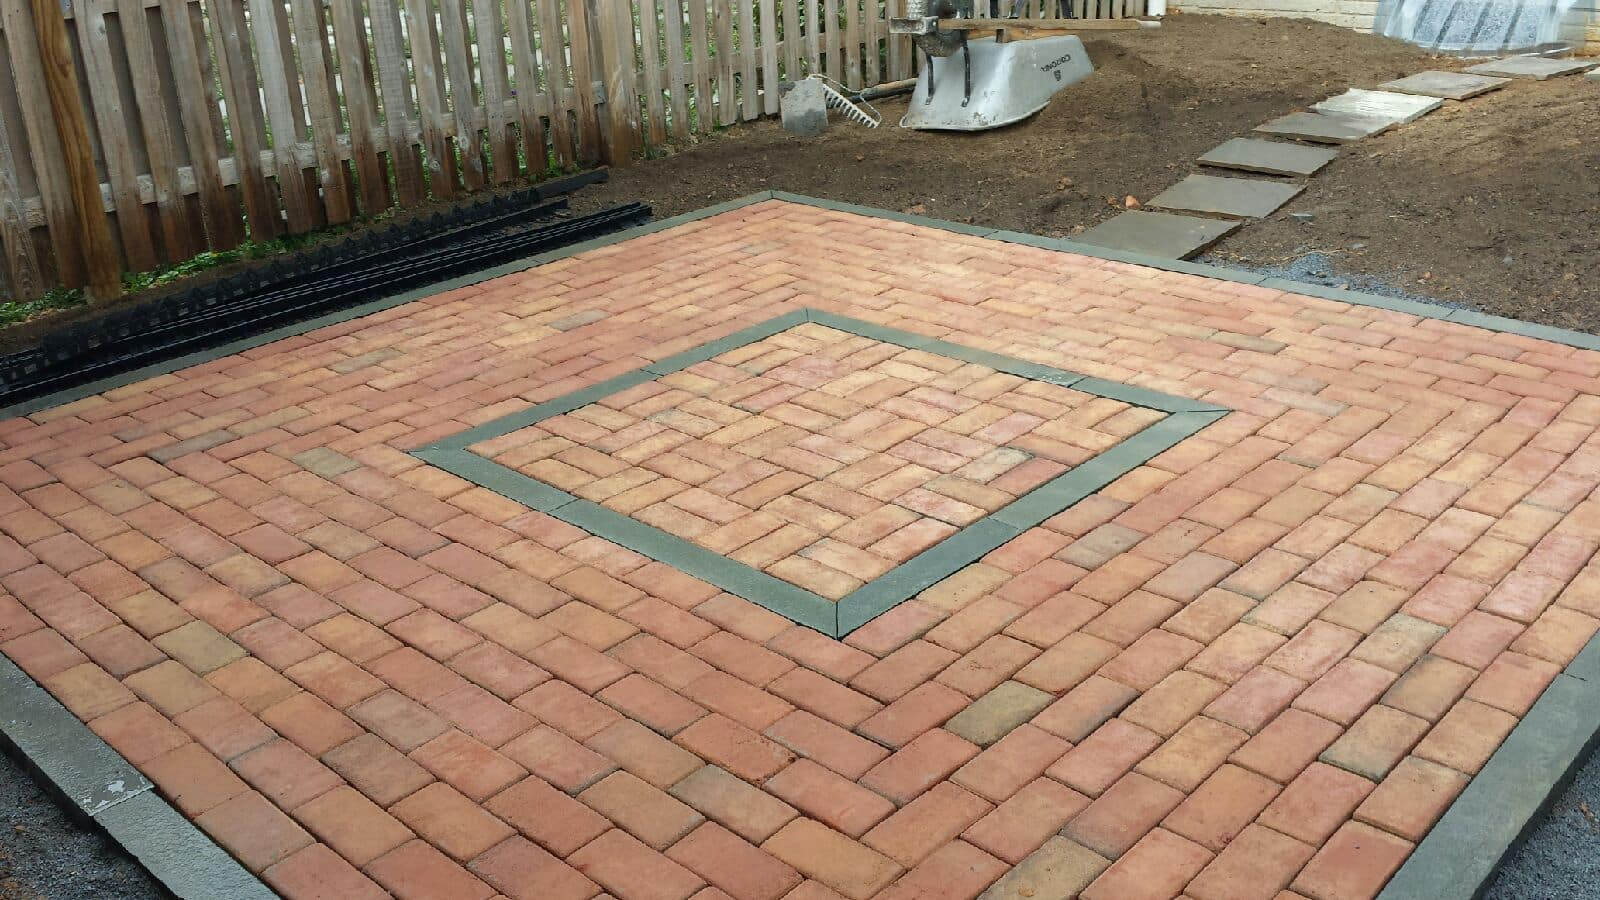 Brick Patio with Flagstone Details